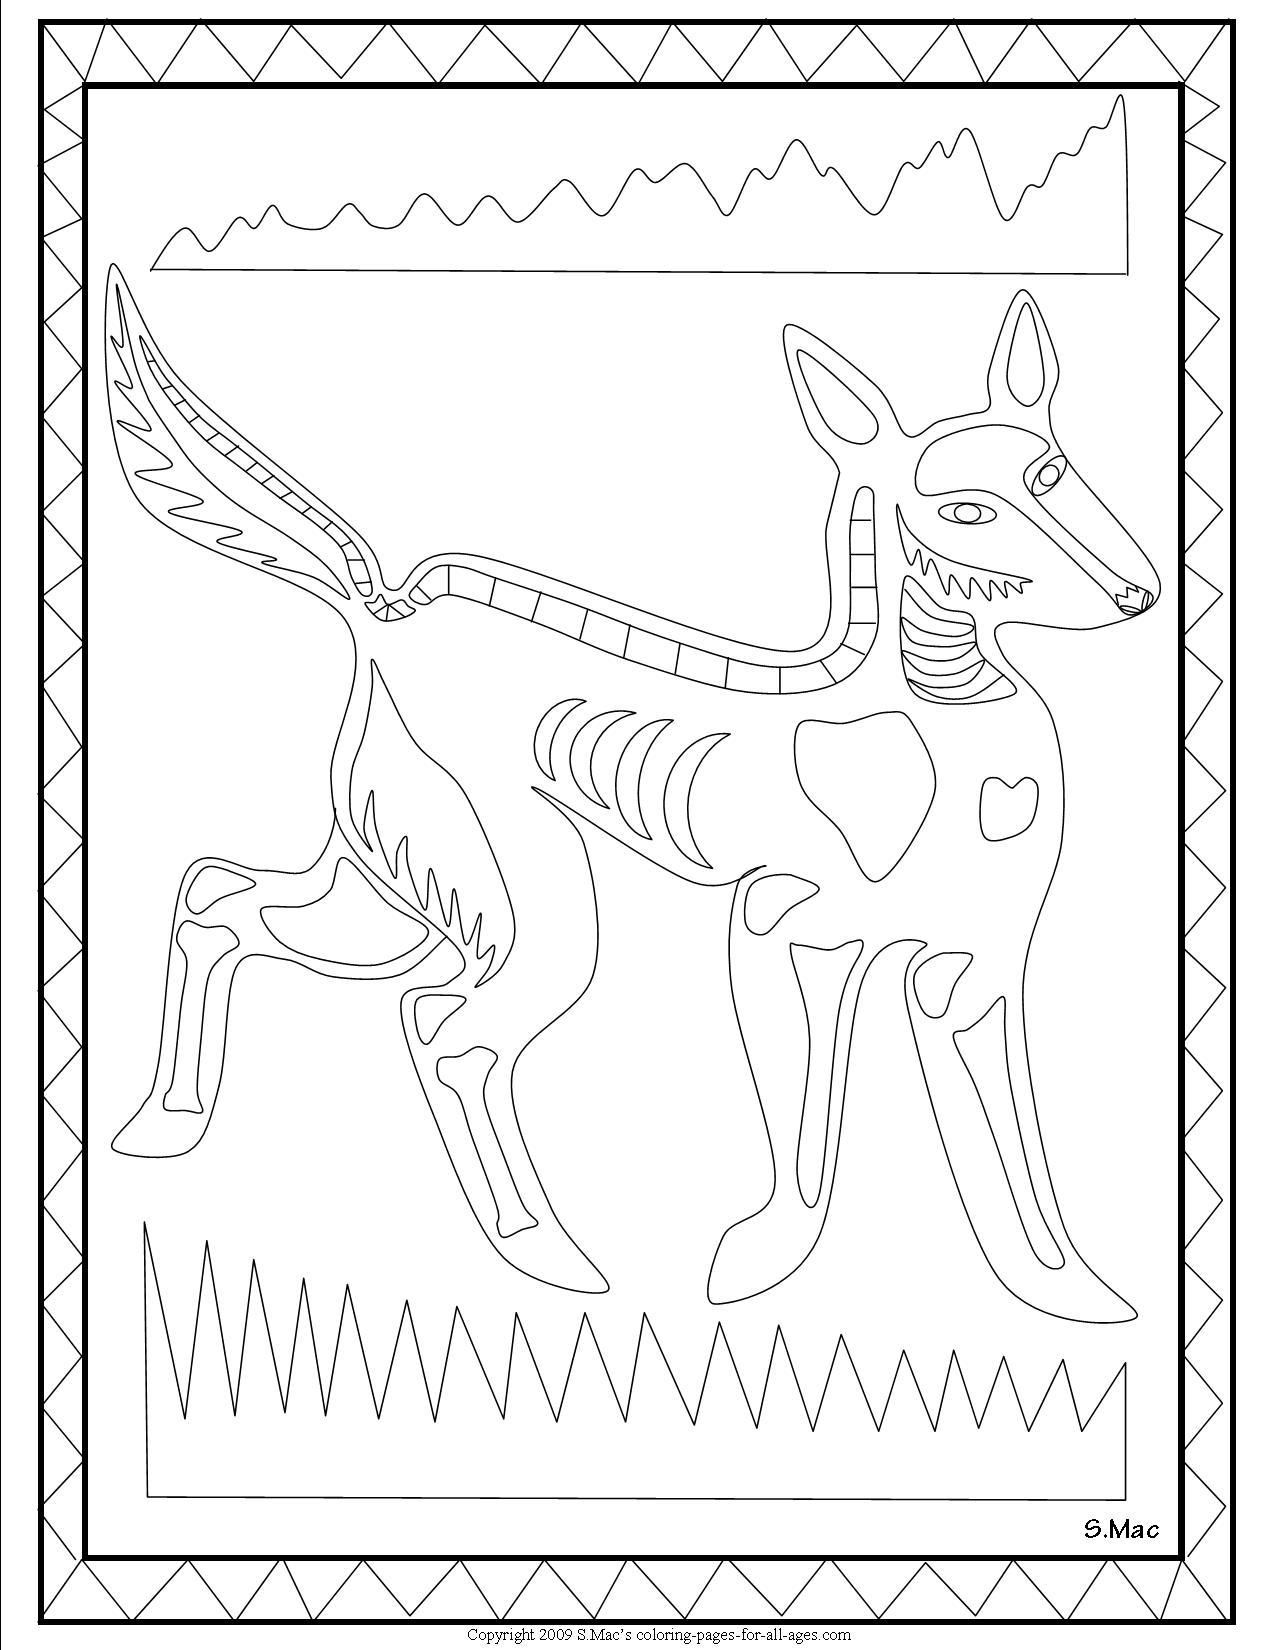 aboriginal dot painting colouring pages aboriginal art colouring pages sketch coloring page pages aboriginal painting dot colouring